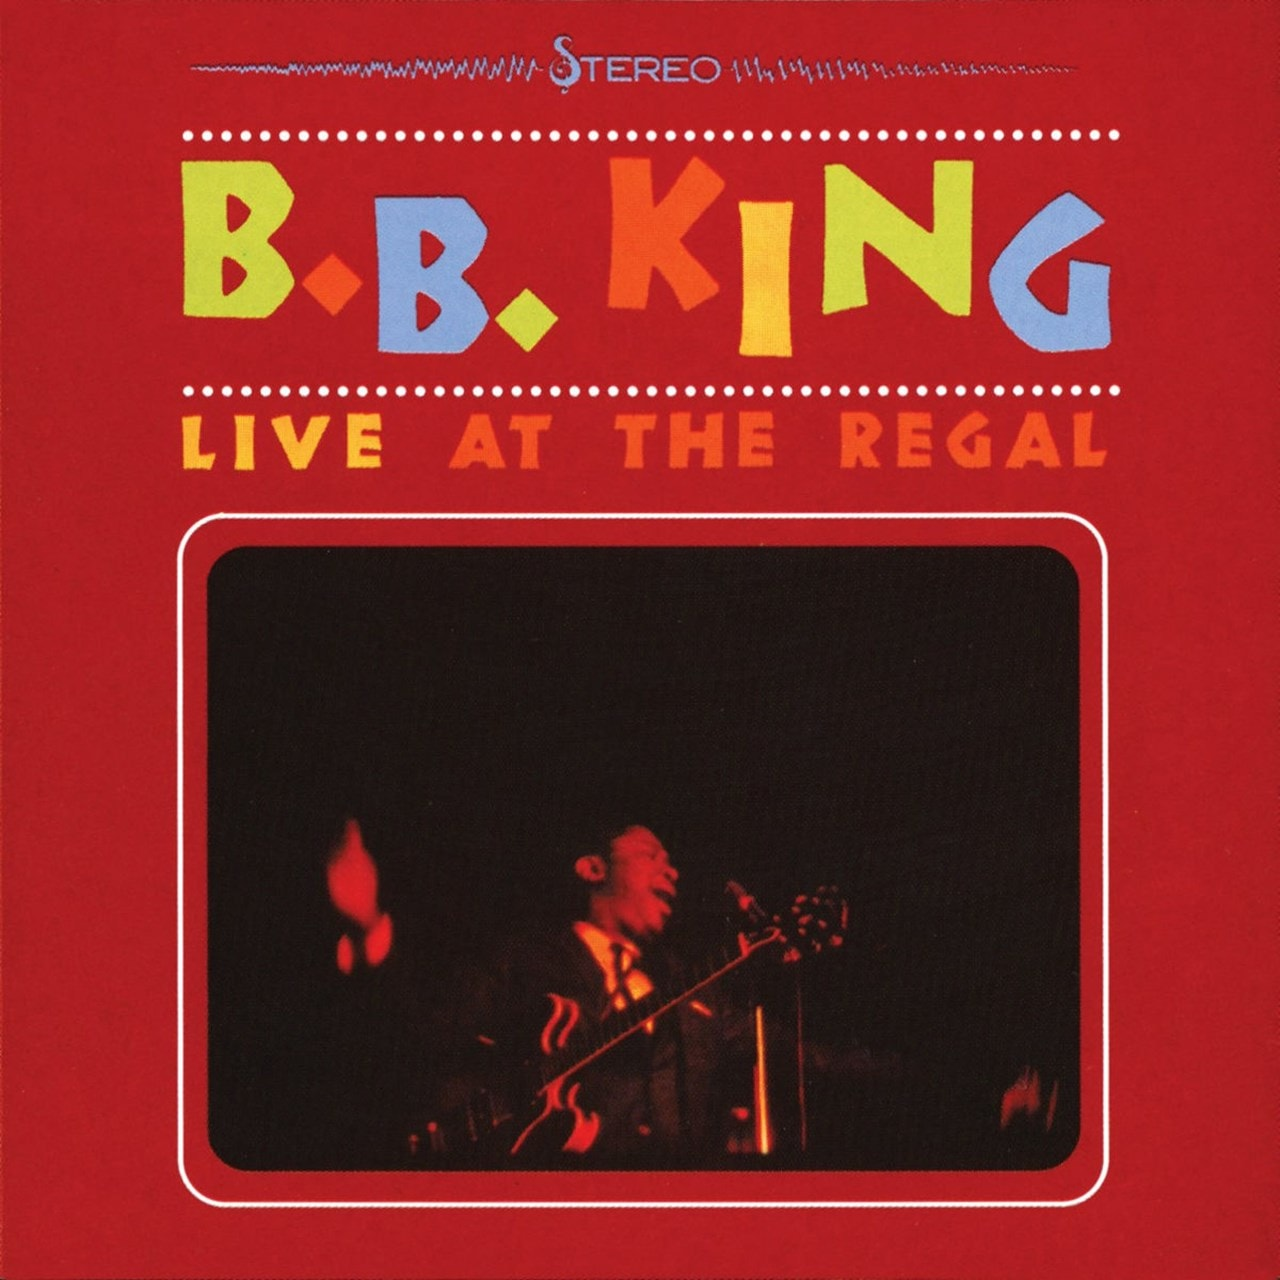 Live at the Regal - 1